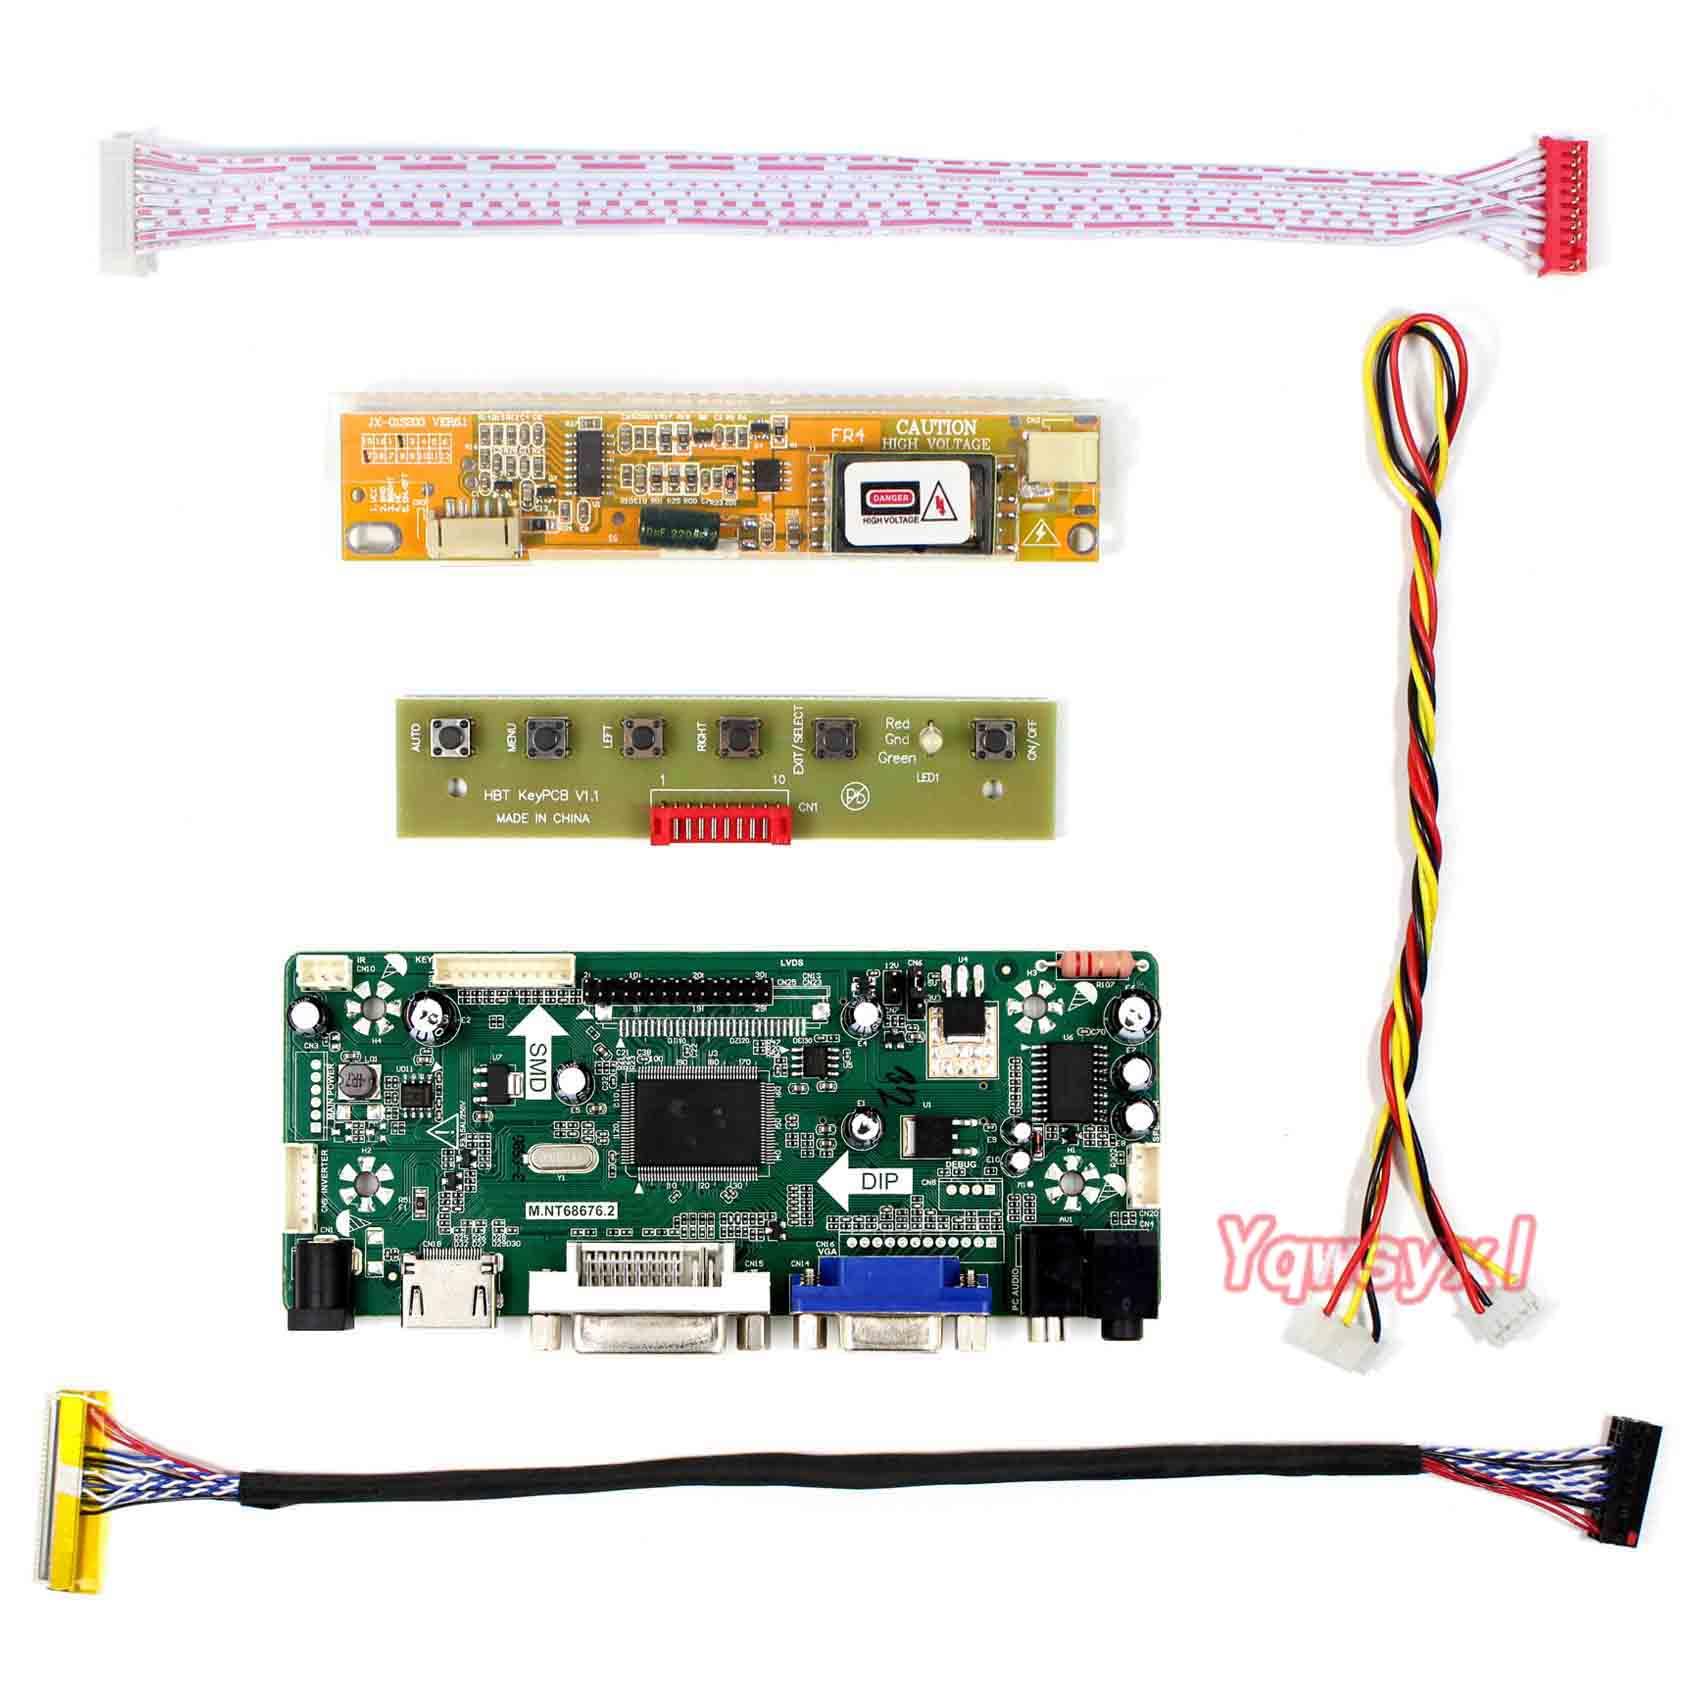 Yqwsyxl Control Board Monitor Kit For LP154WX4(TL)(C8)  LP154WX4-TLC8 HDMI + DVI + VGA LCD LED Screen Controller Board Driver